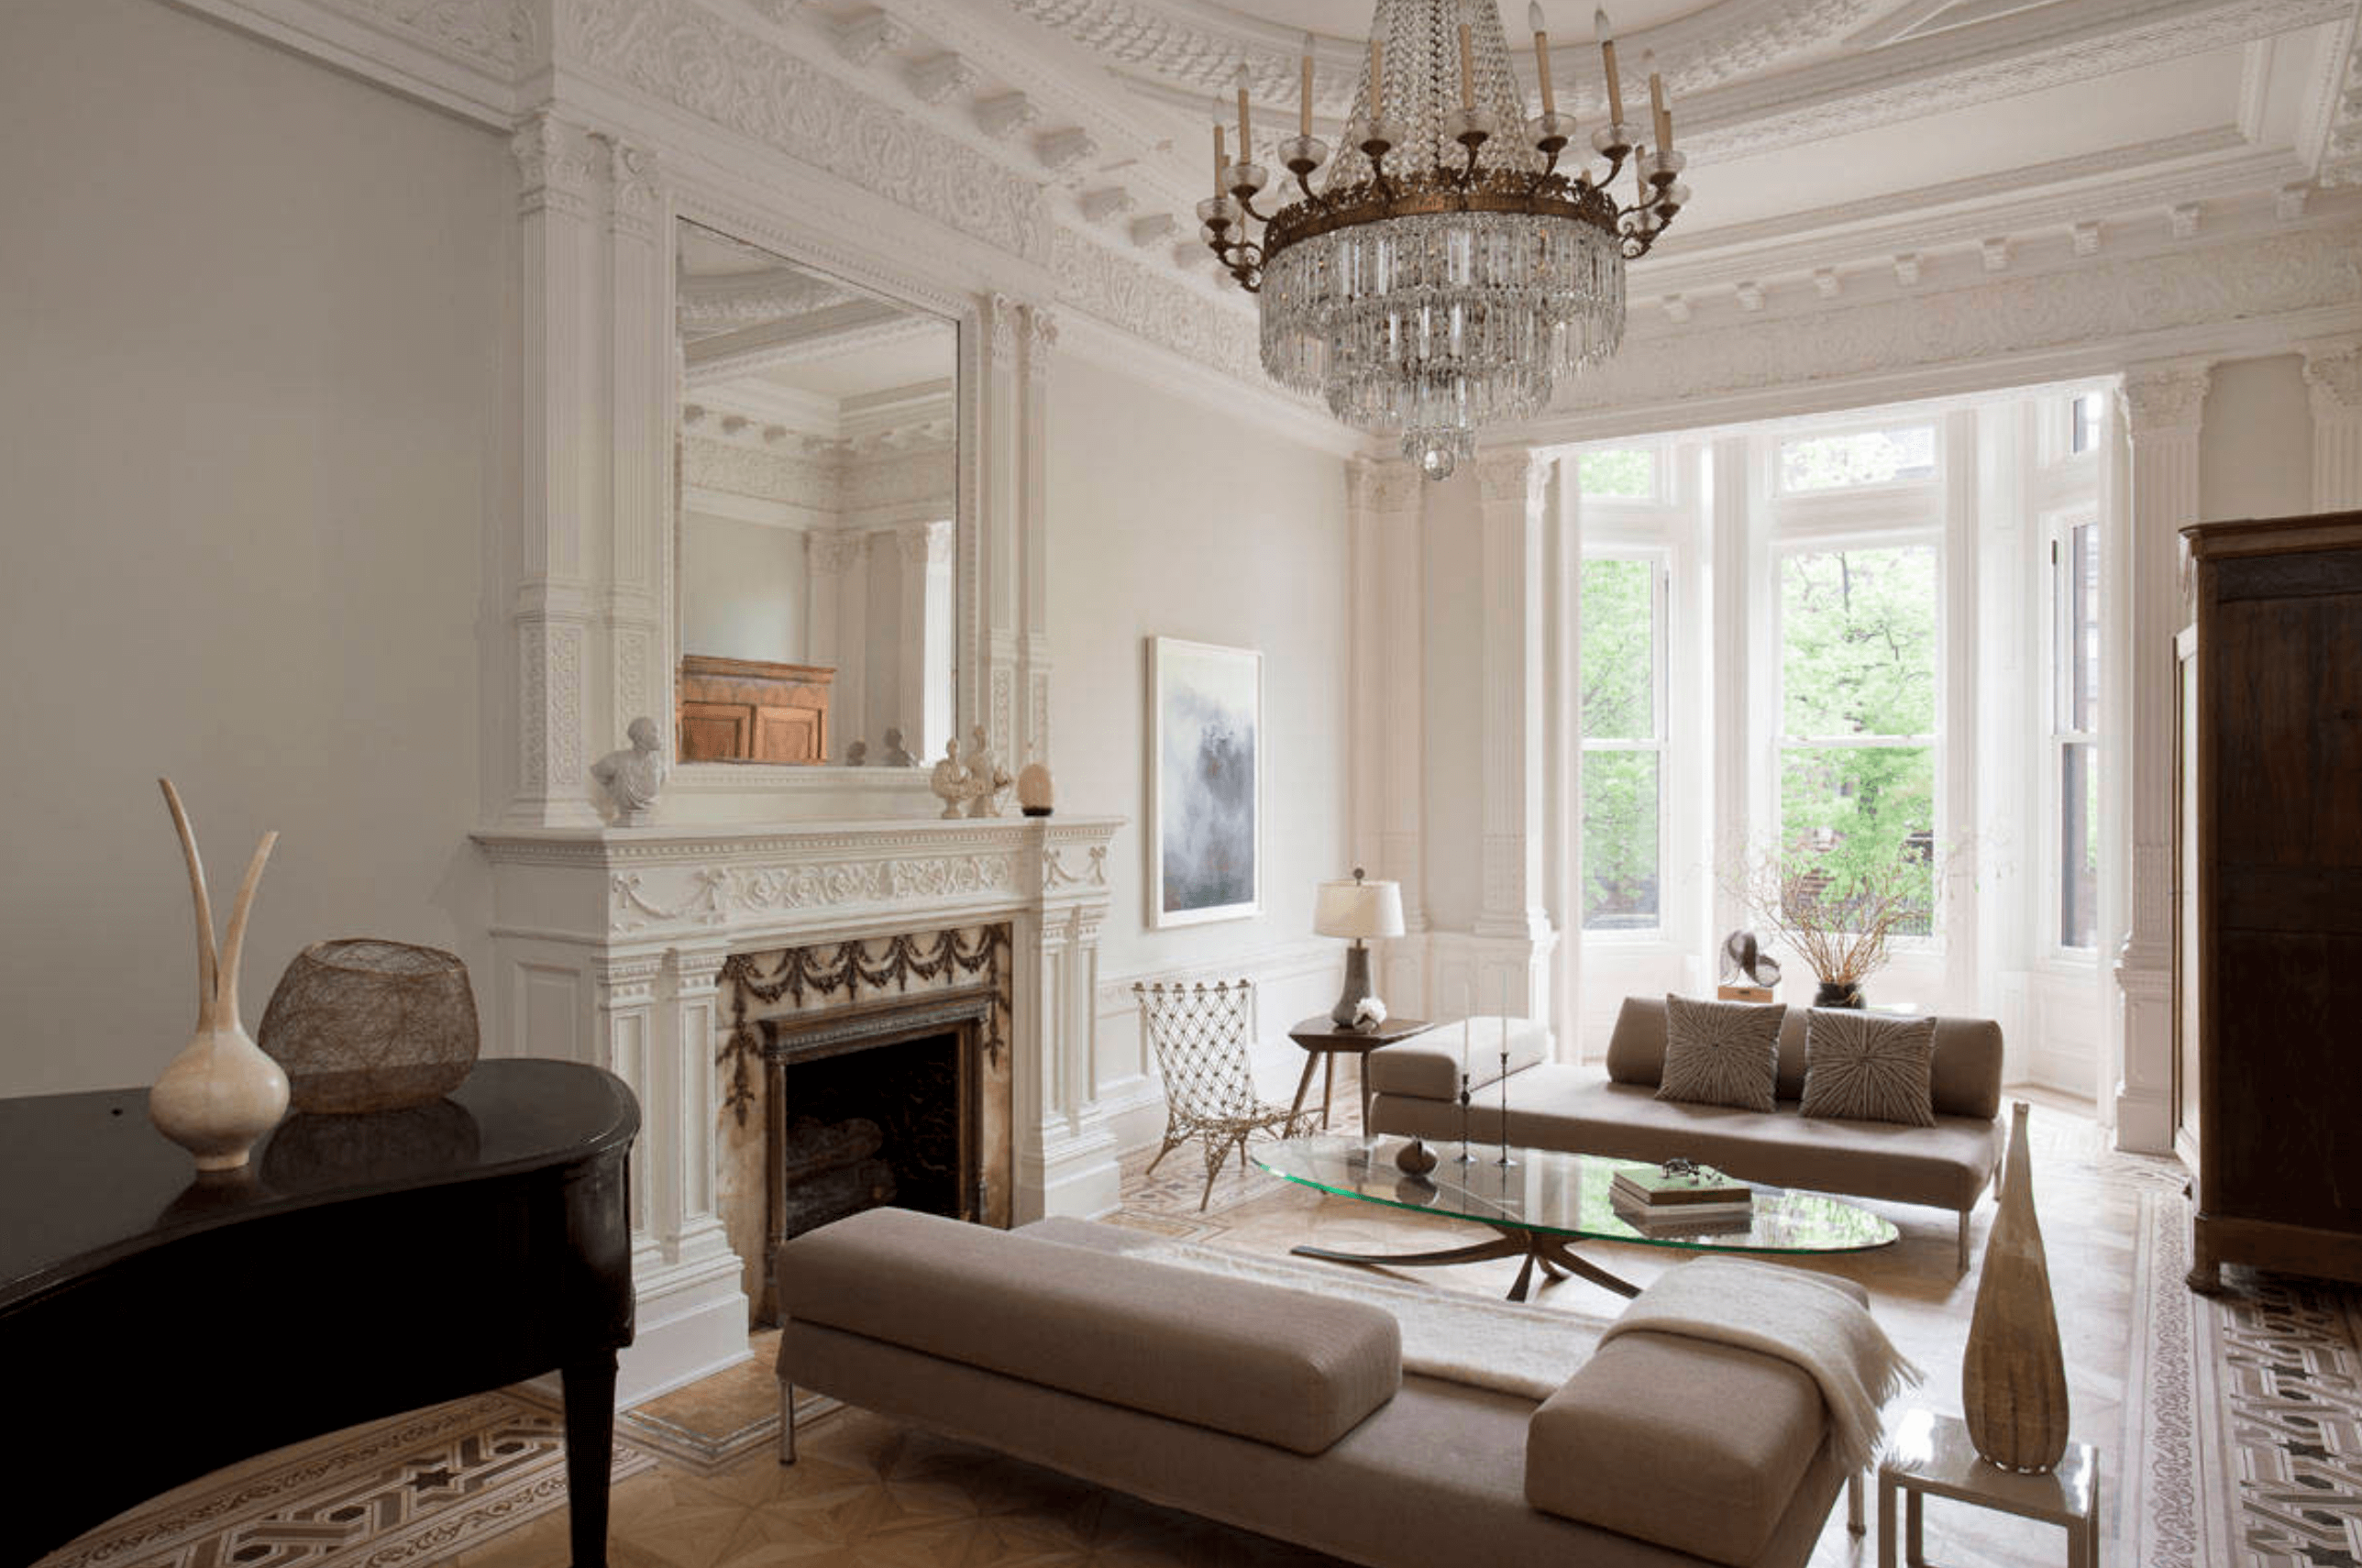 Traditional Interior Design: 7 Best Tips For Creating Beautiful Traditional Interior